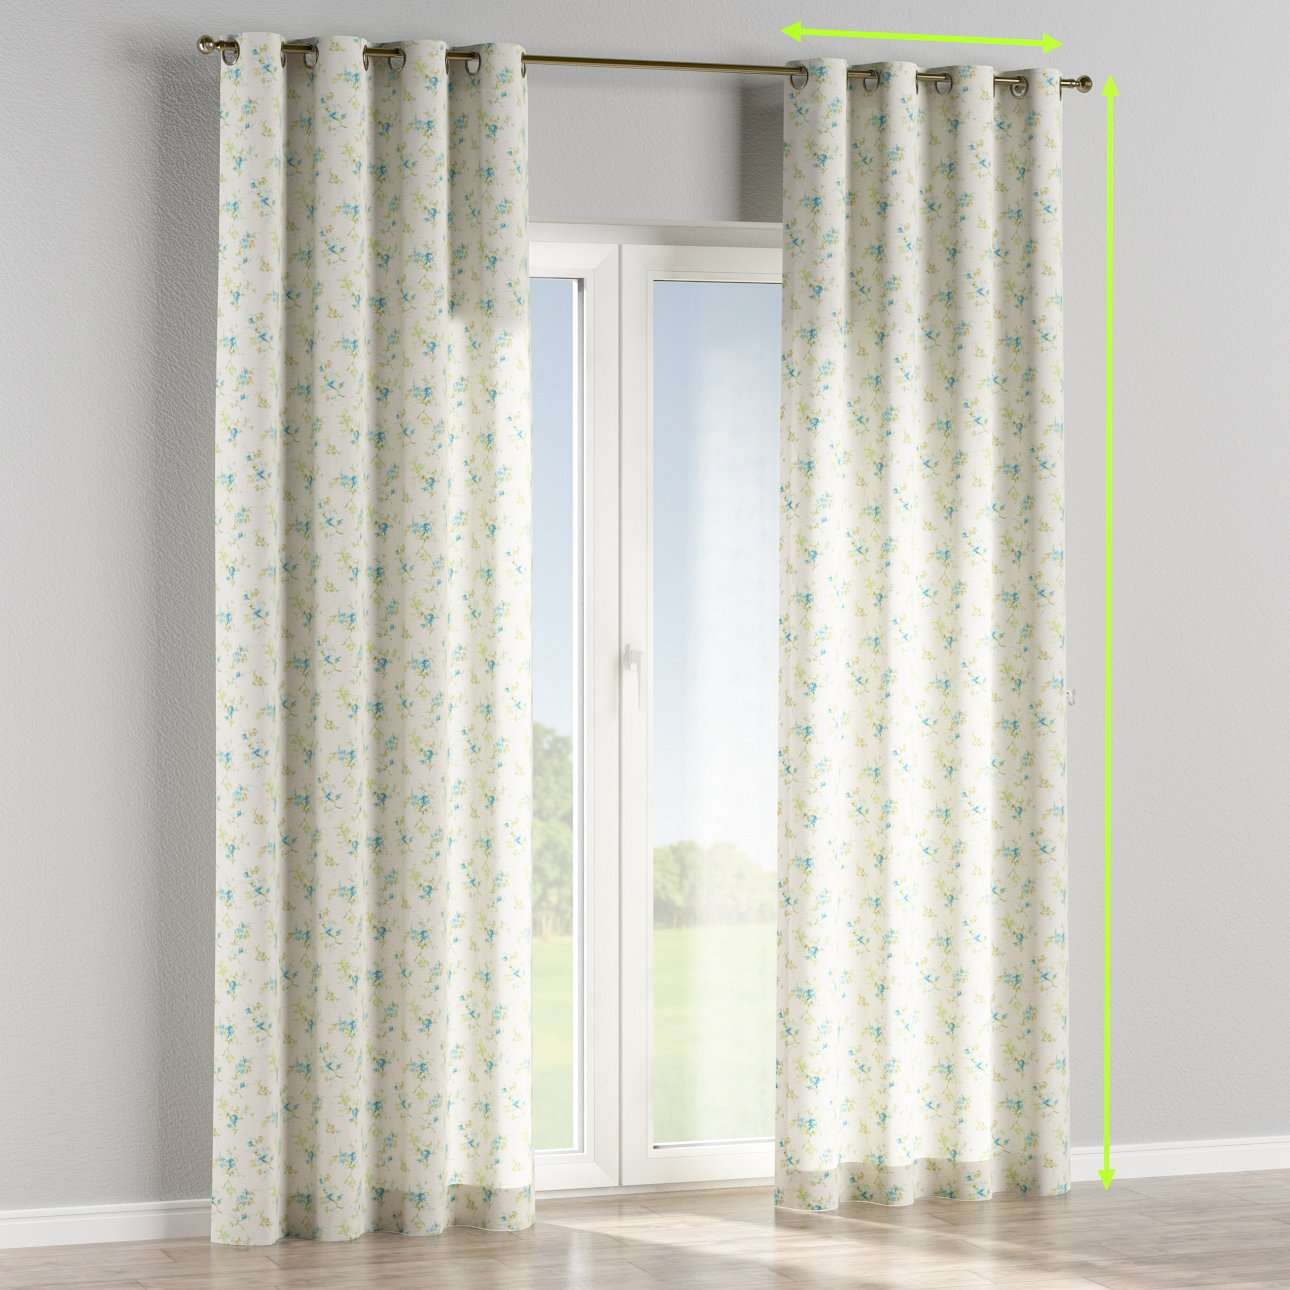 Eyelet curtains in collection Mirella, fabric: 141-16